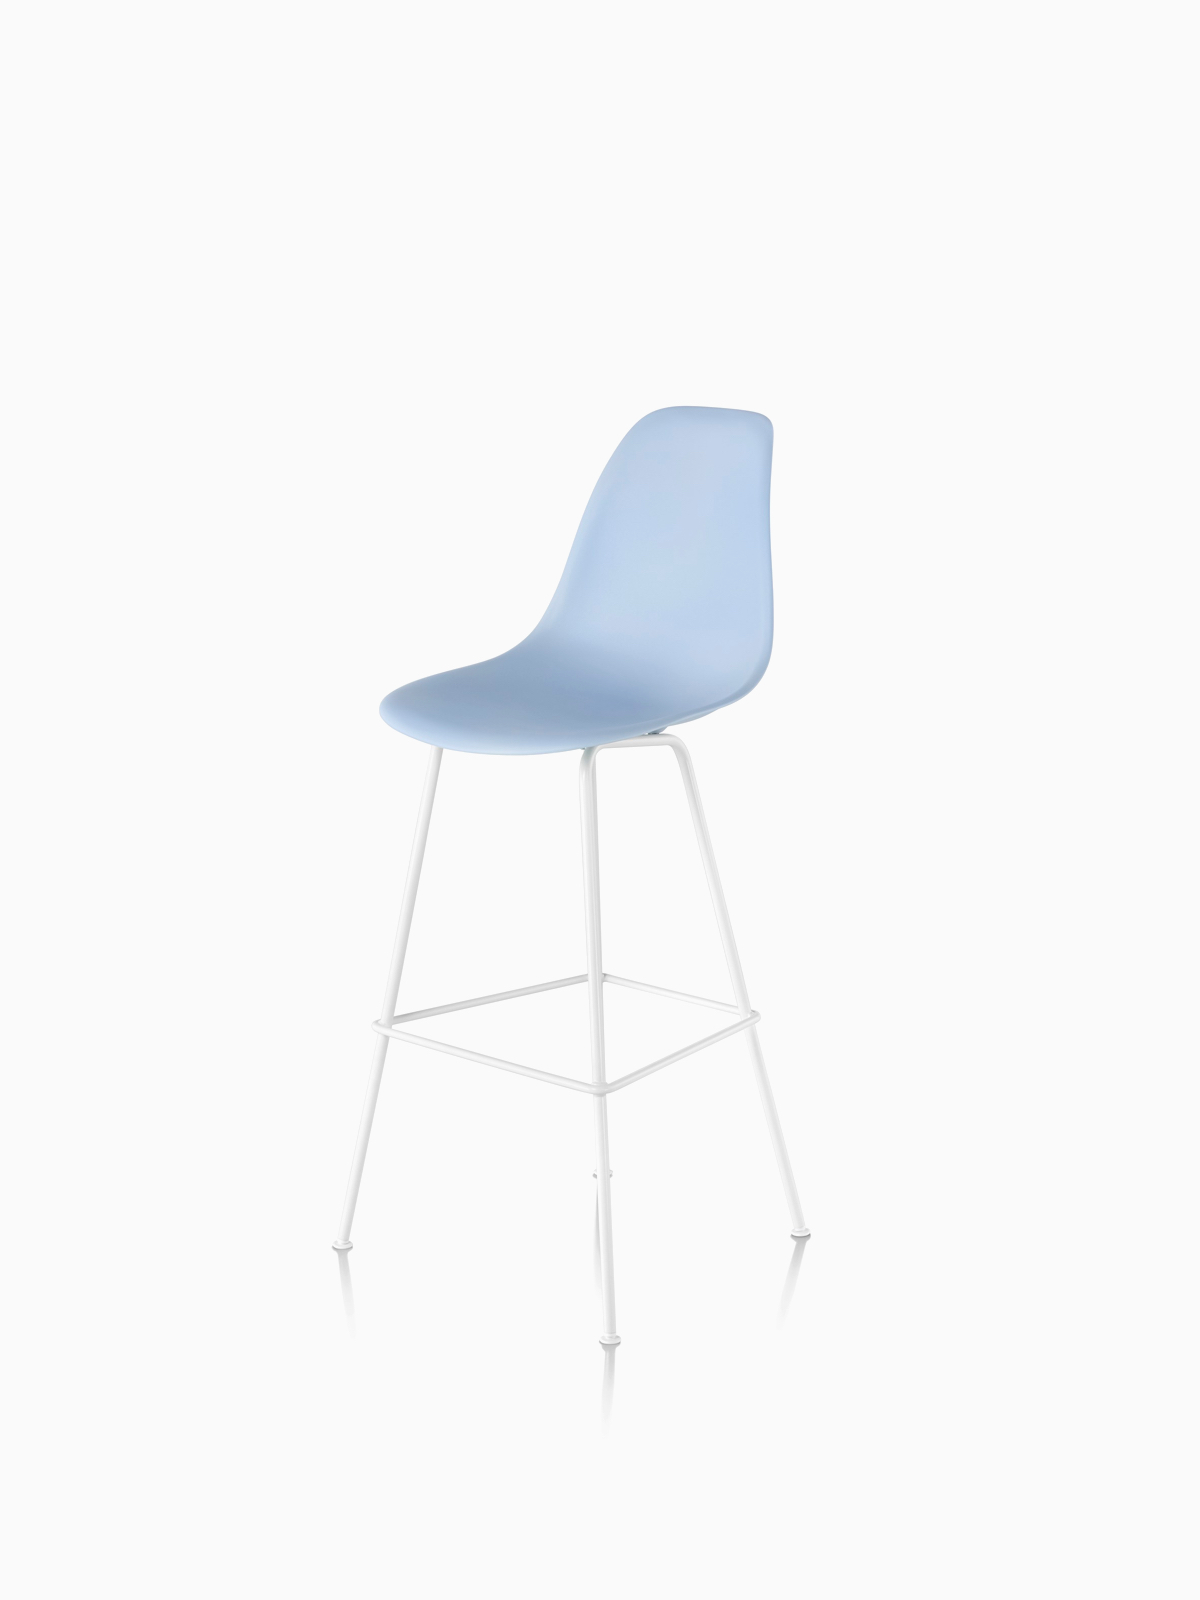 Eames Moulded Plastic Stool